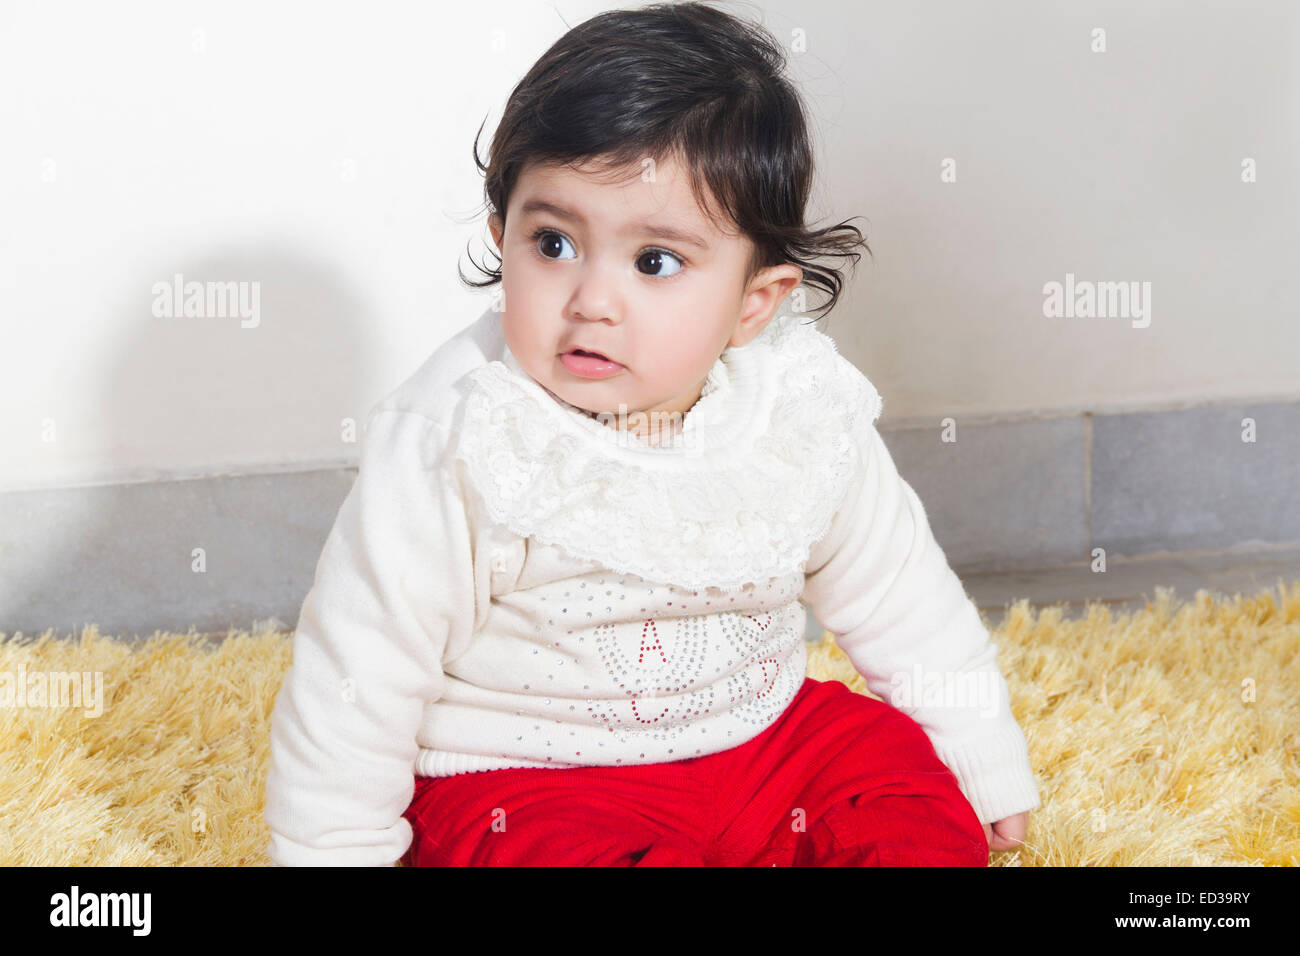 1 indian child Baby - Stock Image